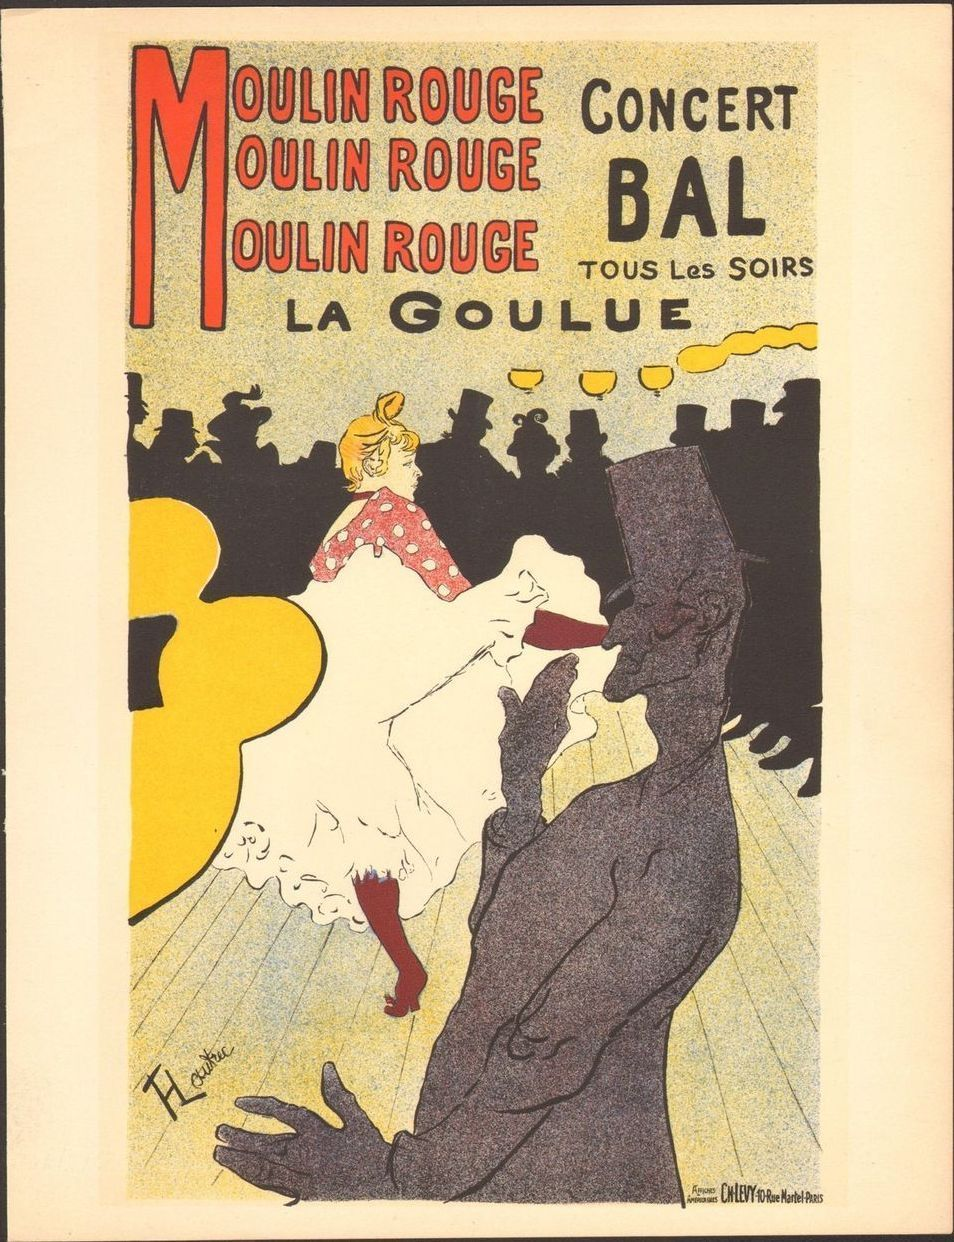 1891 poster by Toulouse-Lautrec